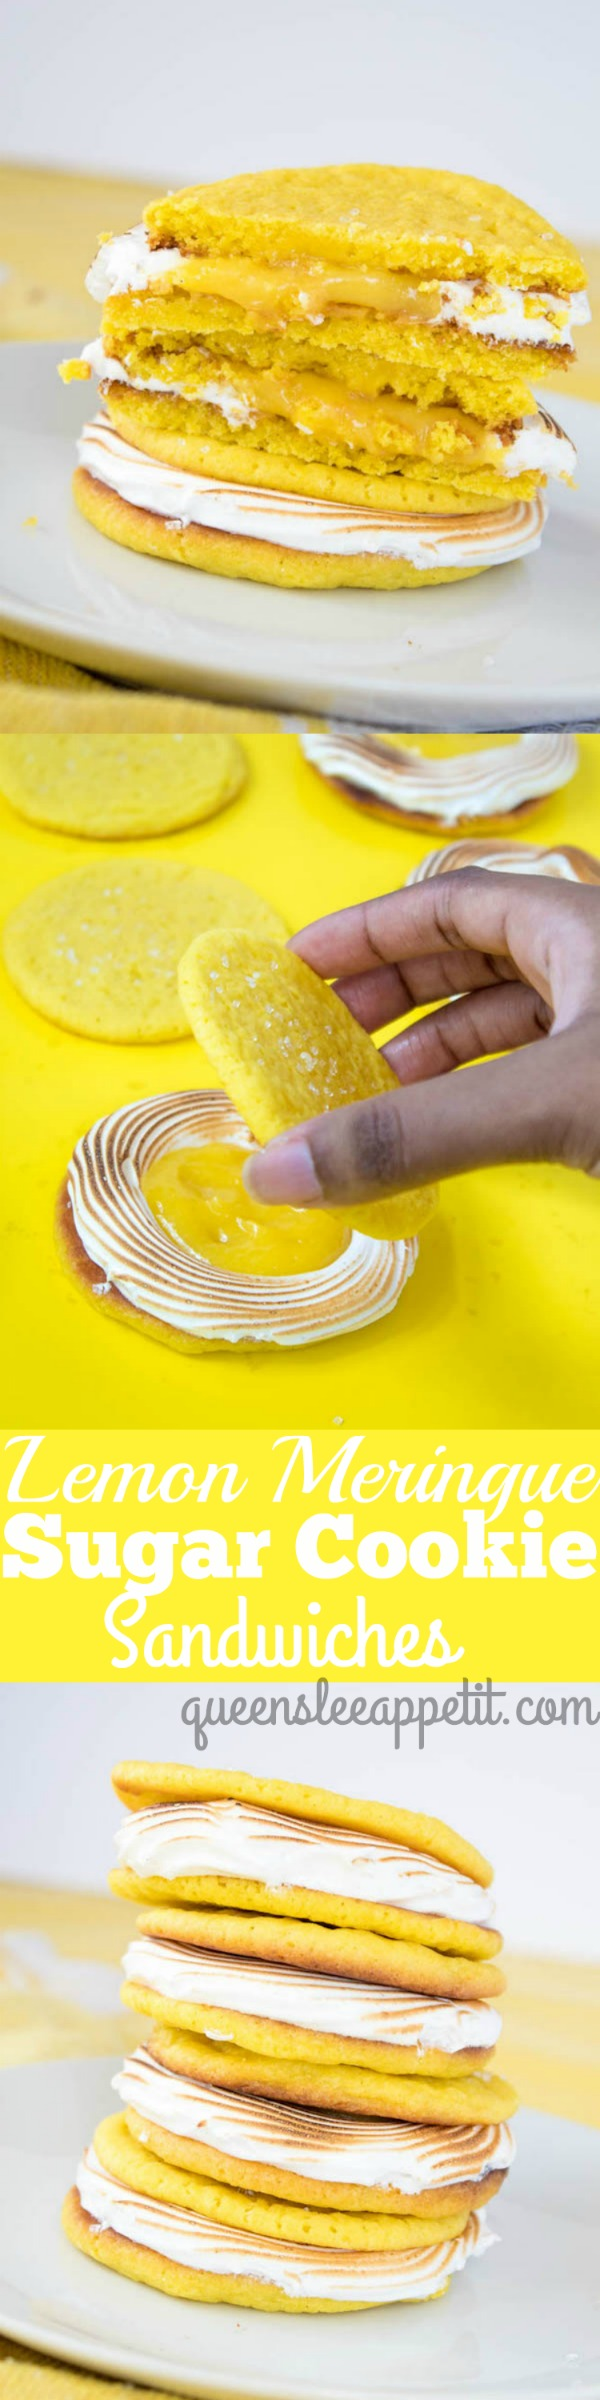 Soft and chewy lemon sugar cookies, filled with fluffy meringue and sweet lemon curd